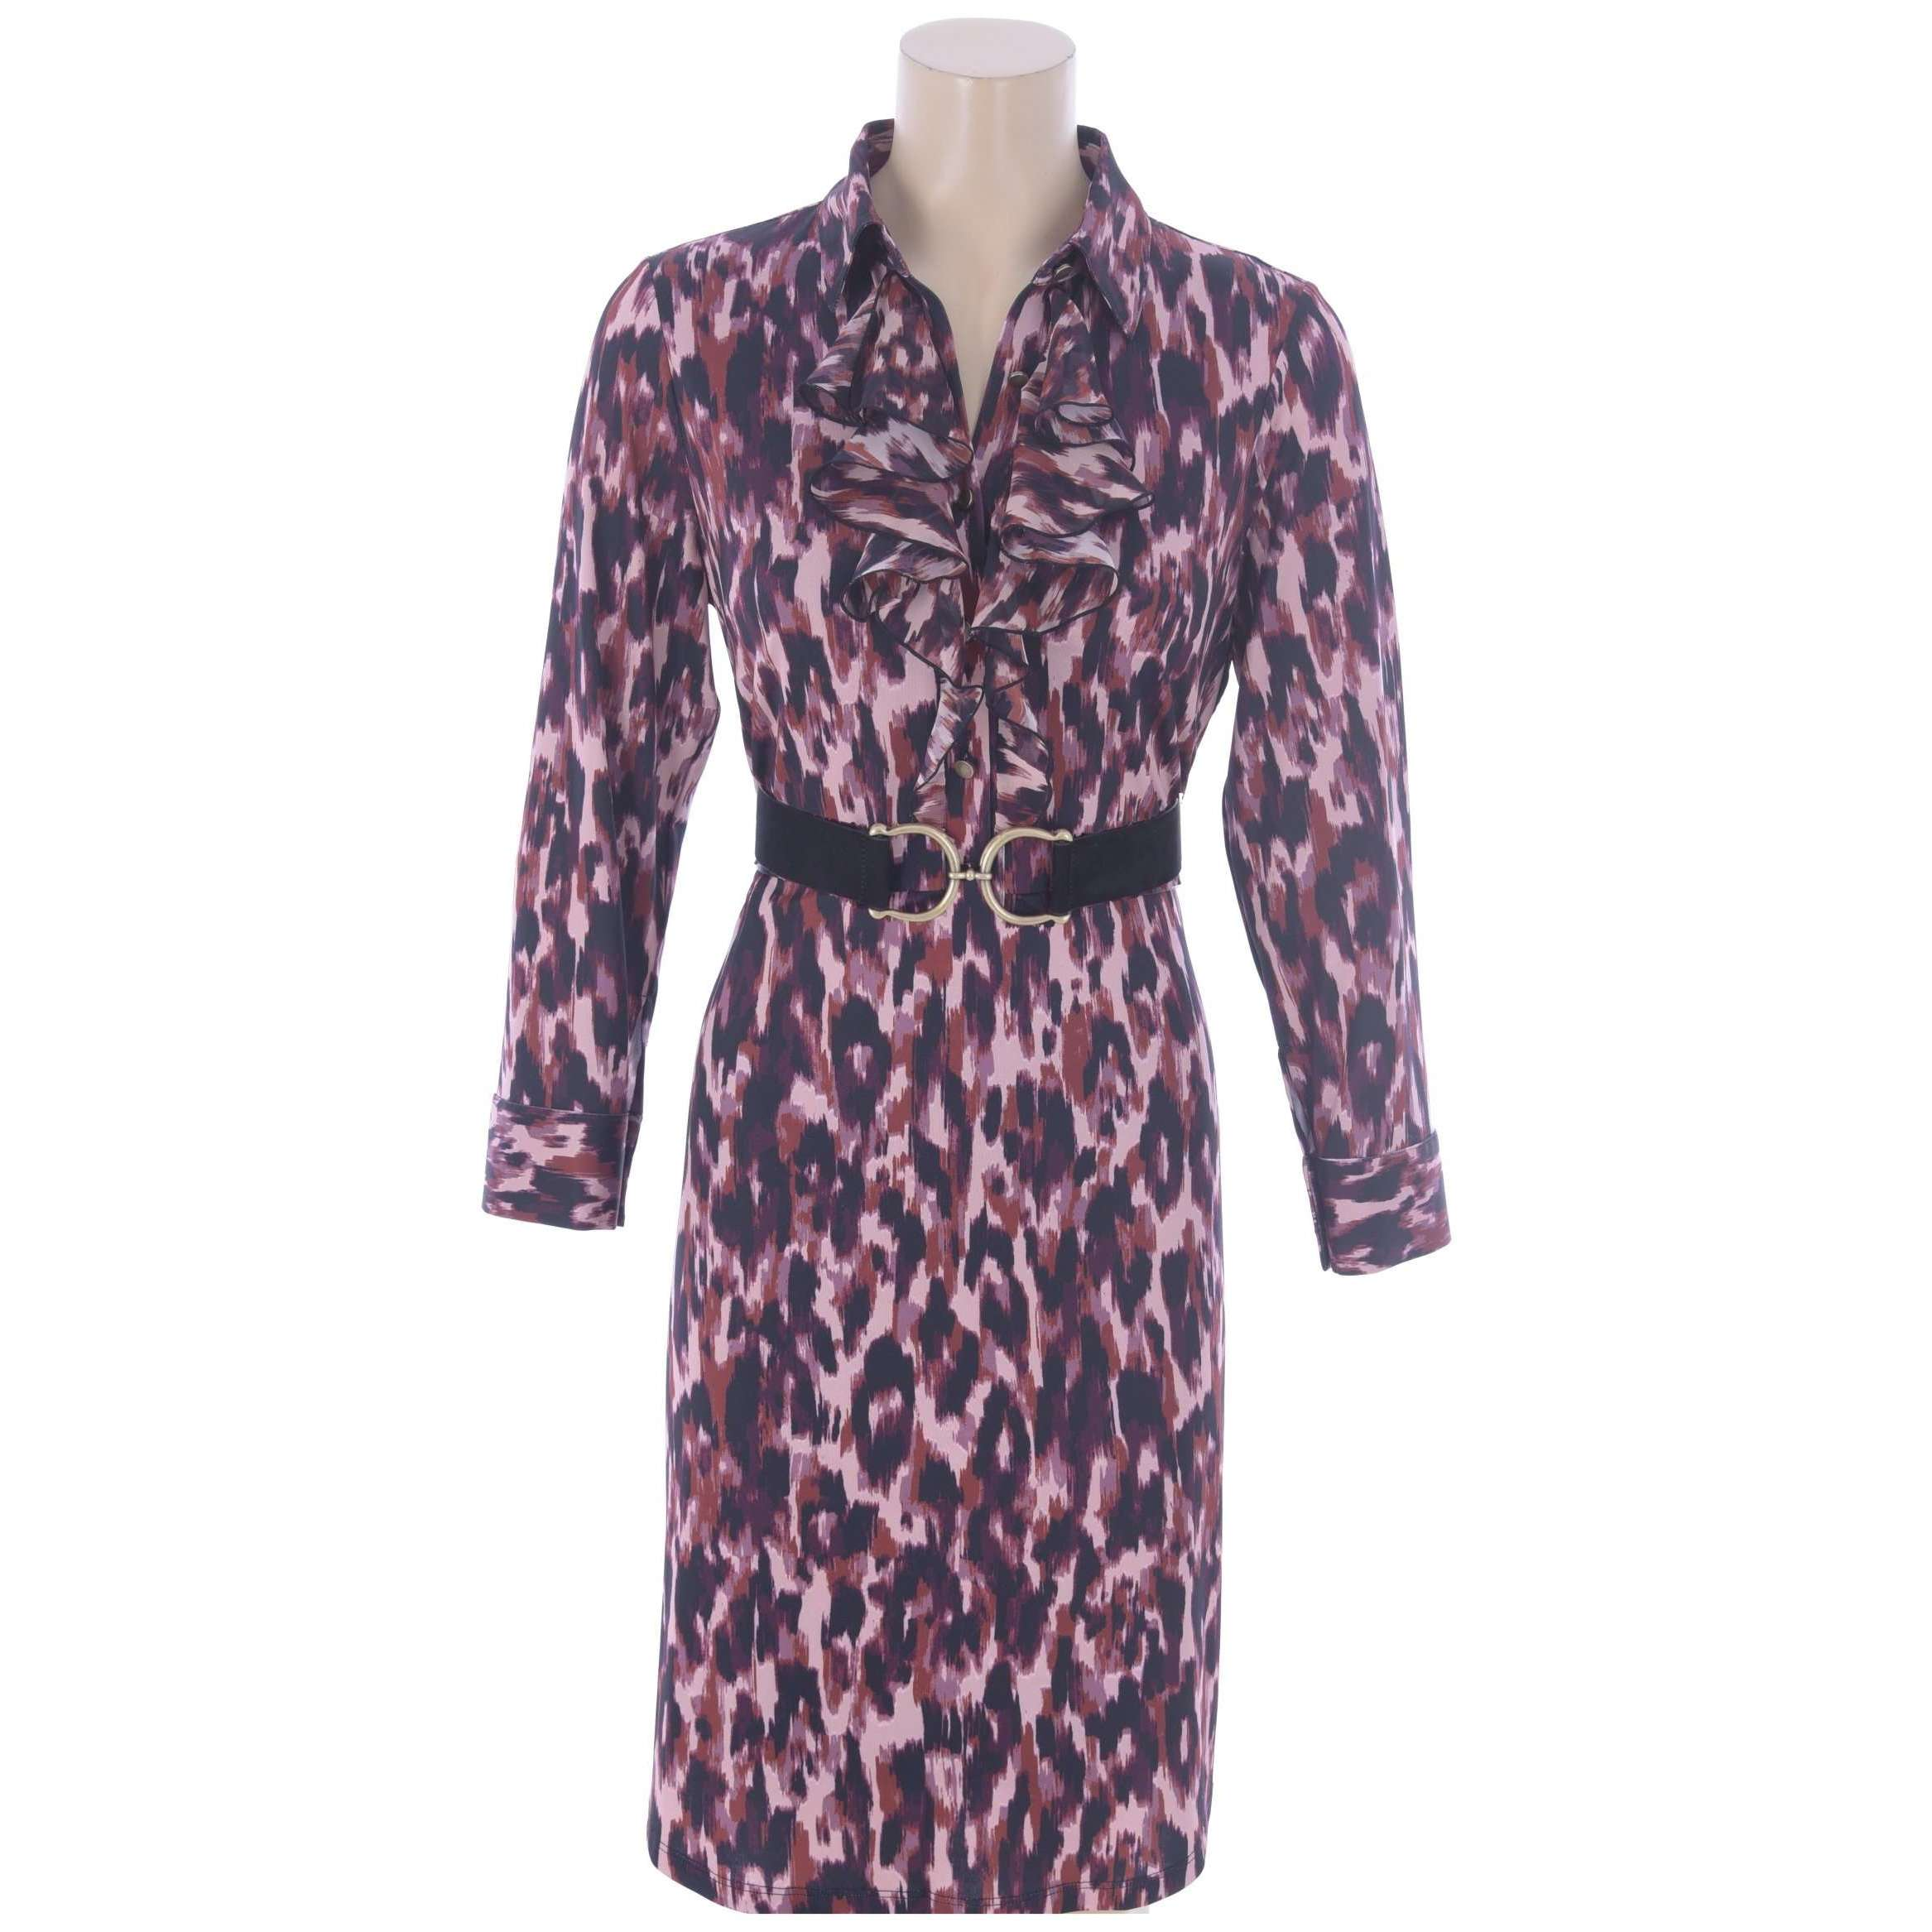 R845 Animal Print Dress with Frill and Belt